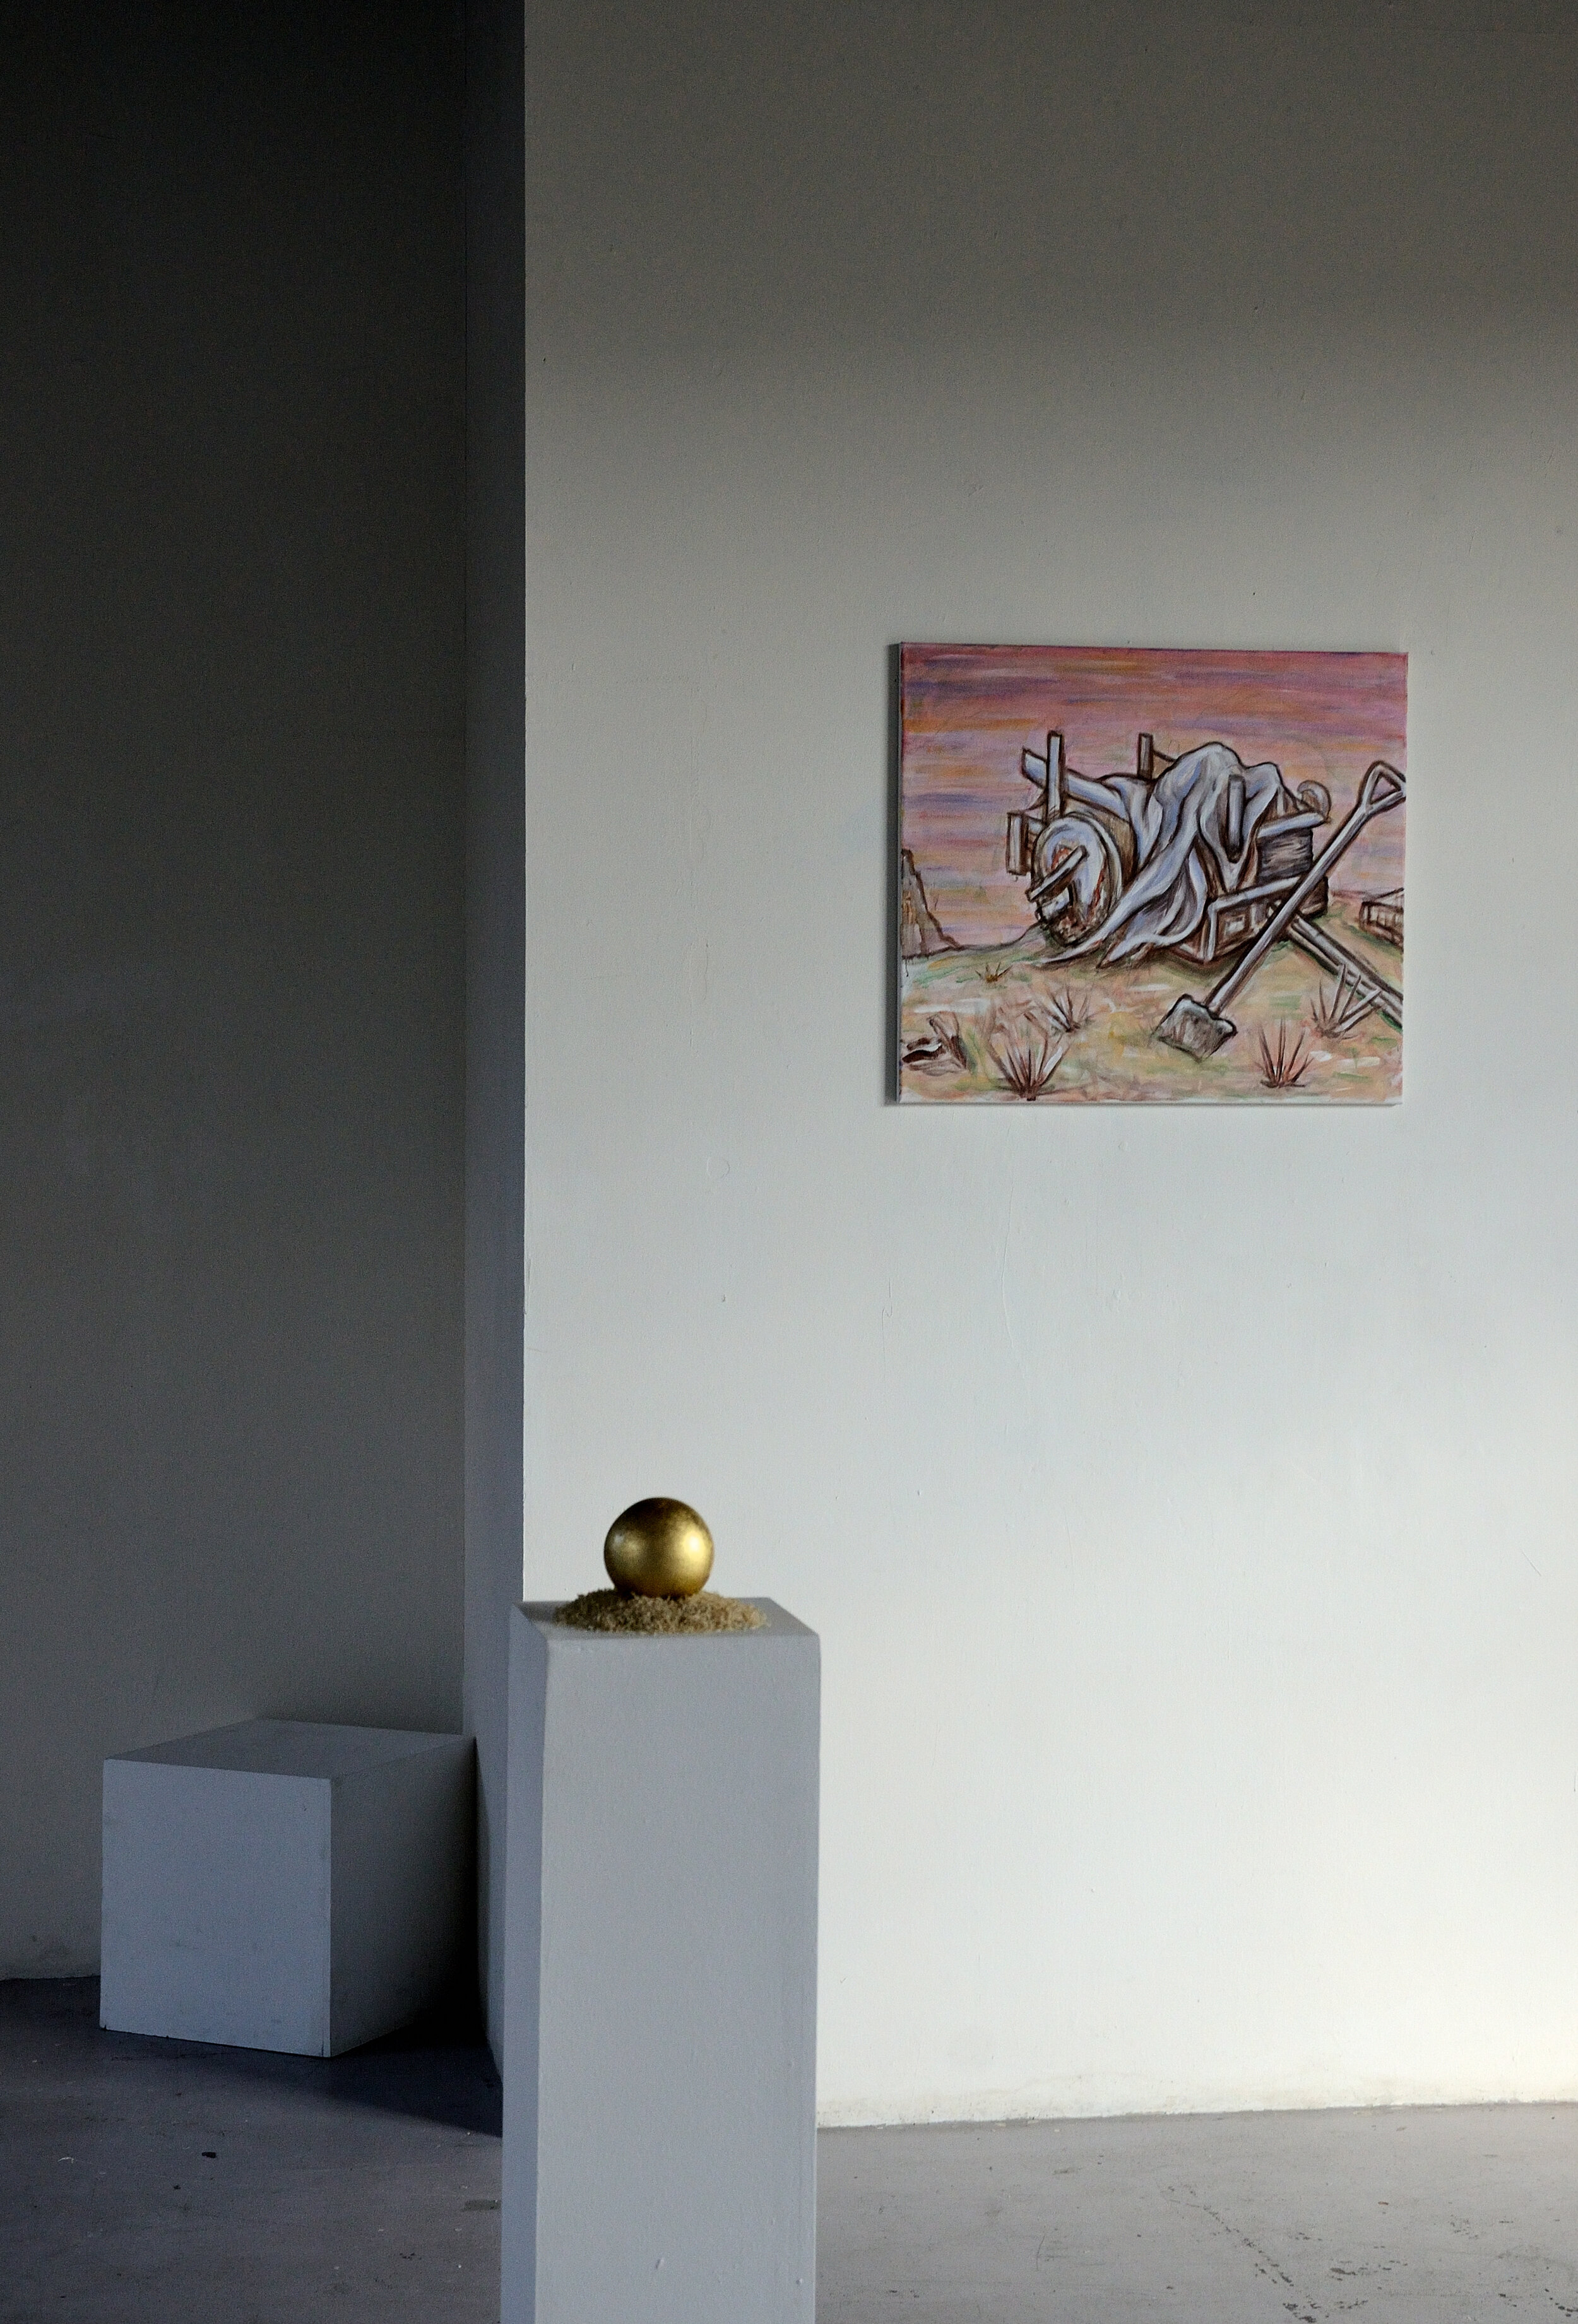 25. Exhibition overview 4 at NEVERNEVERLAND may 2019.JPG